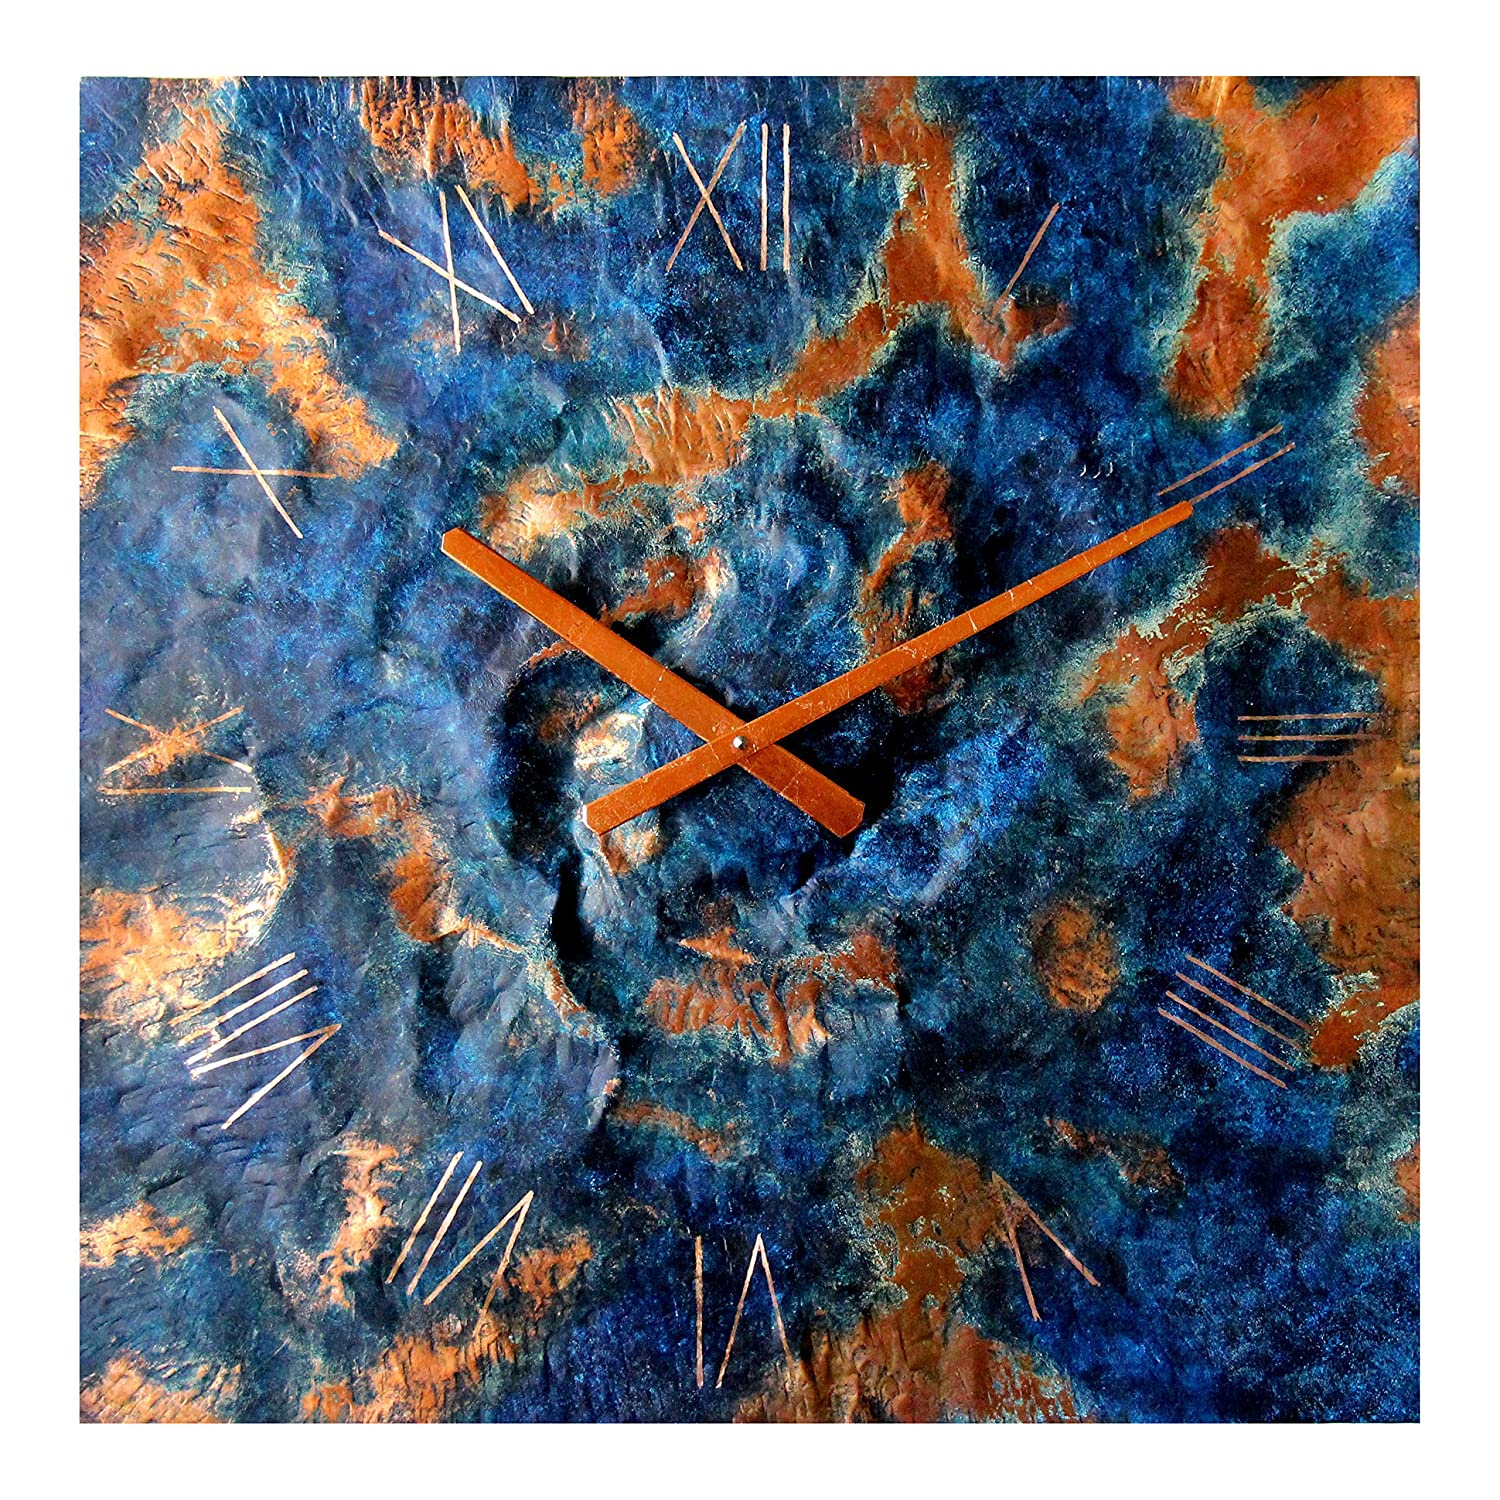 Oversized Square Copper Rustic Wall Clock 24-inch Silent Non Ticking Gift for Home//Office//Kitchen//Bedroom//Living Room